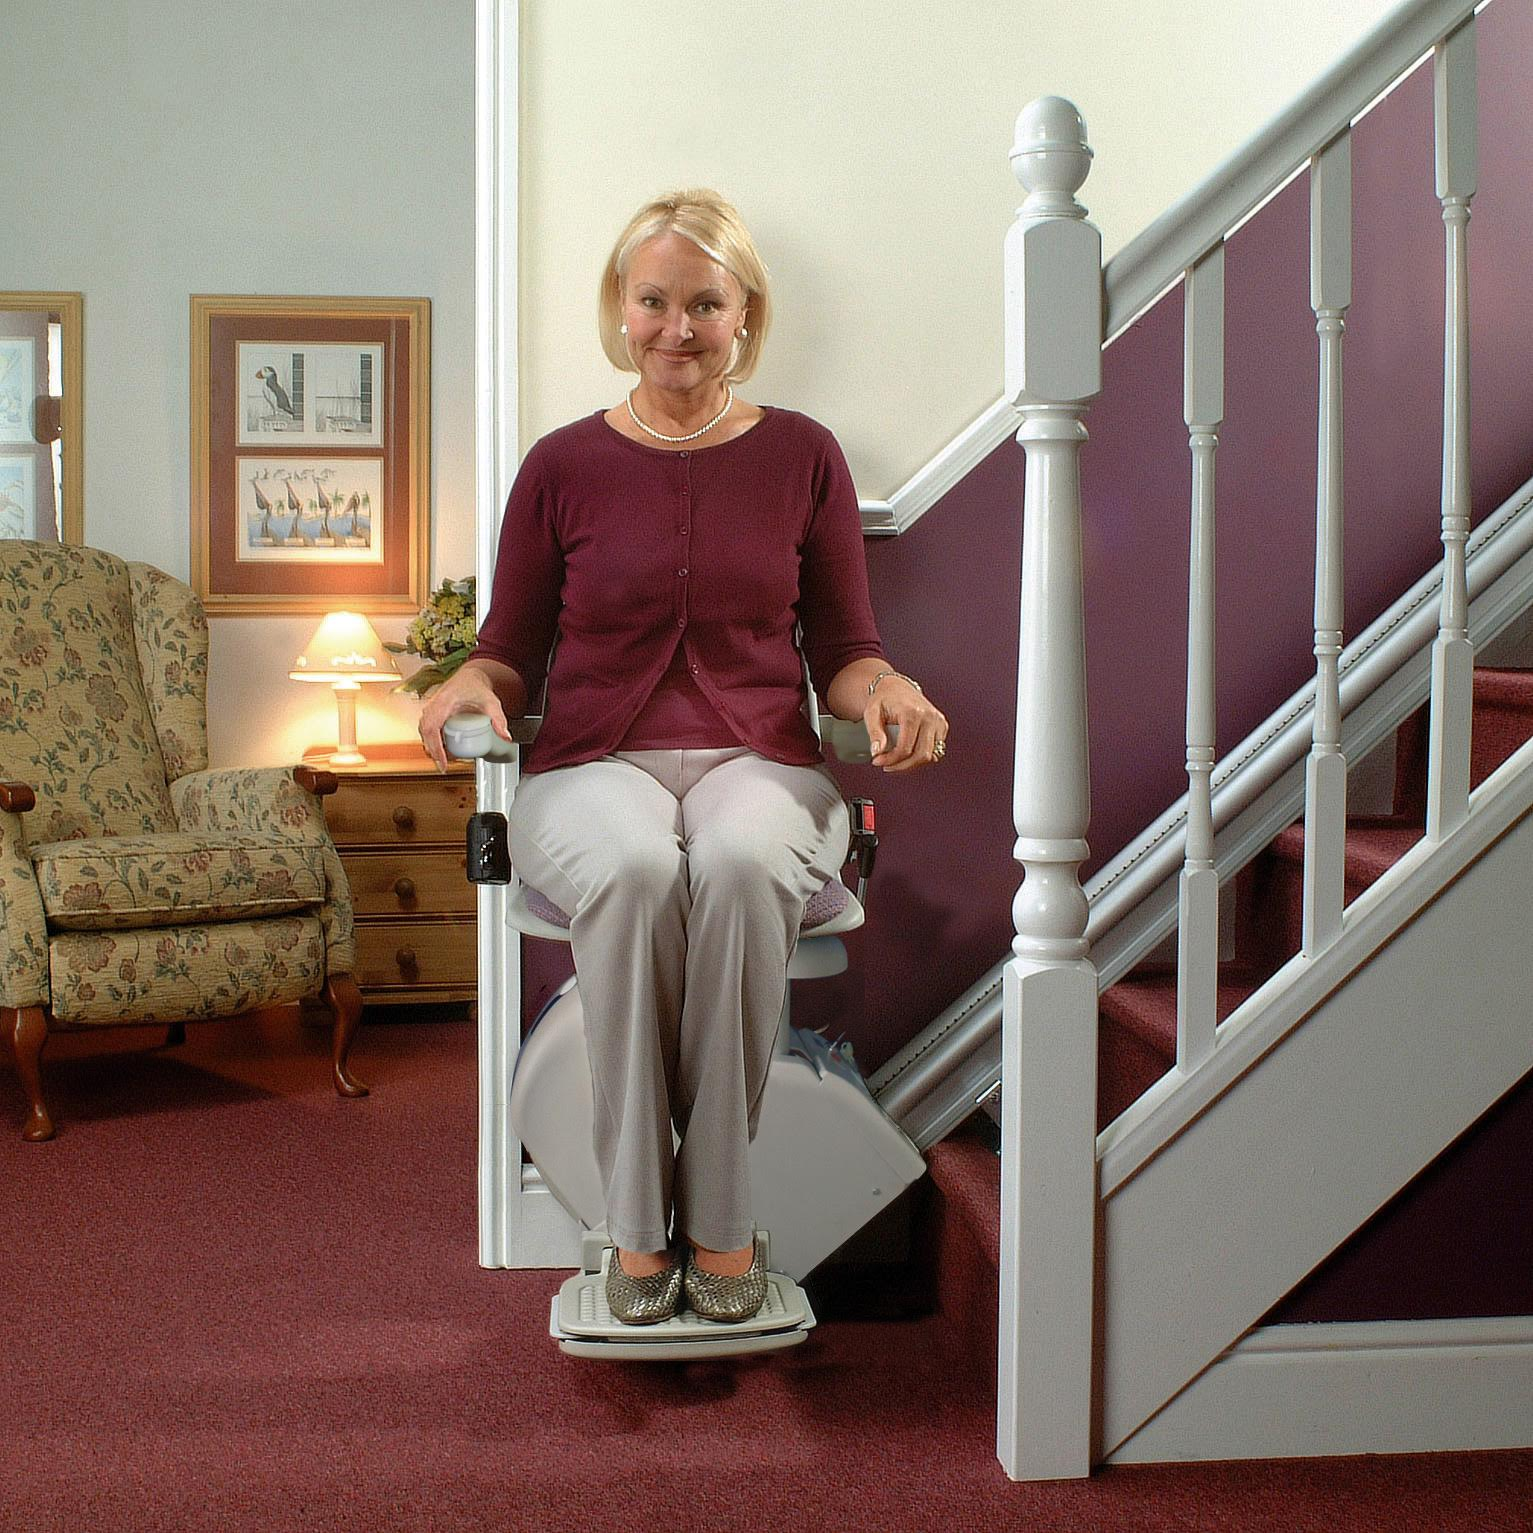 City Stair Lift are home residential indoor stairway staircase glides